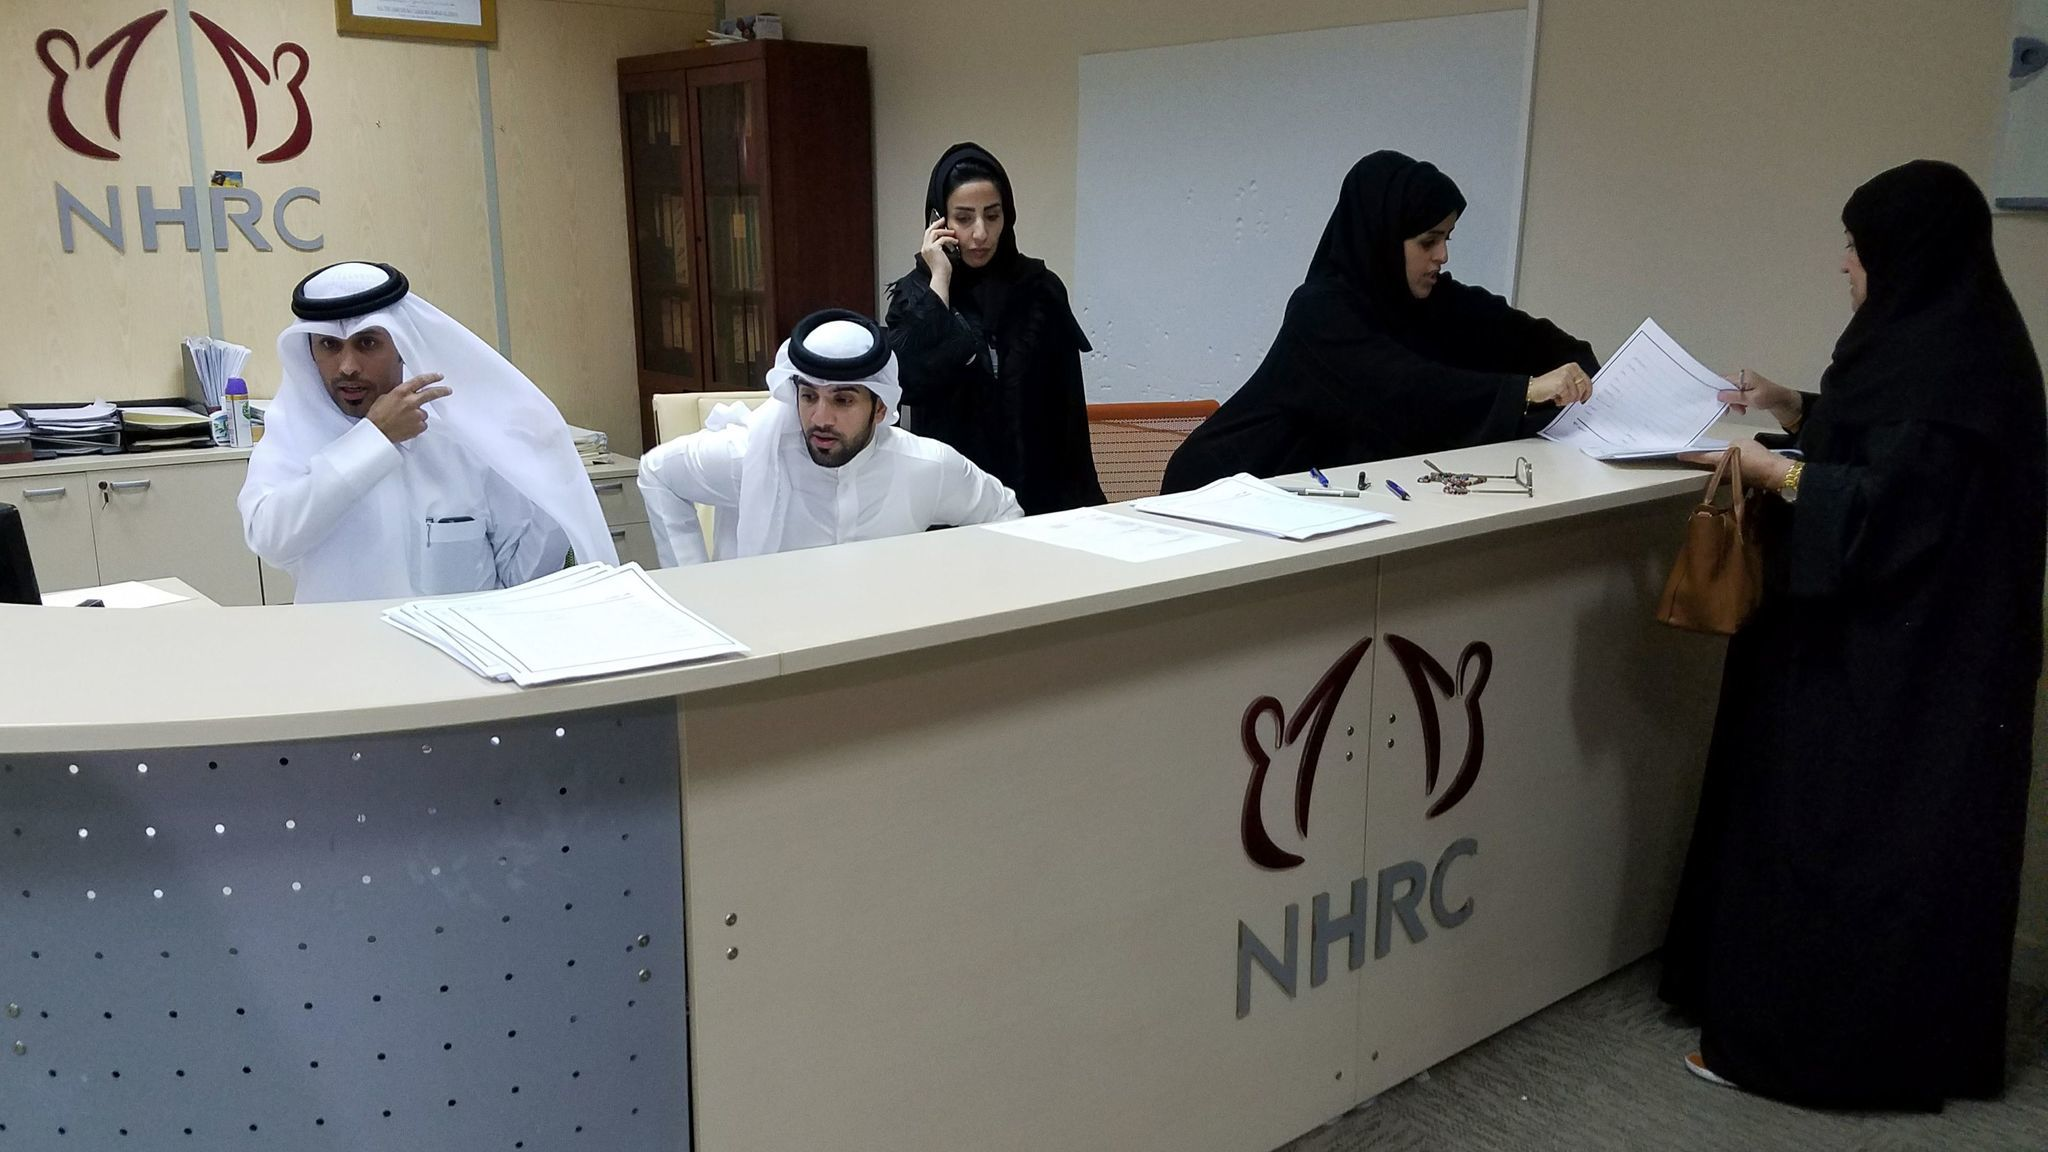 In June, Qatar's National Human Rights Committee reported that it had been receiving a hundred complaints a day since the blockade by four Arab nations started June 5.